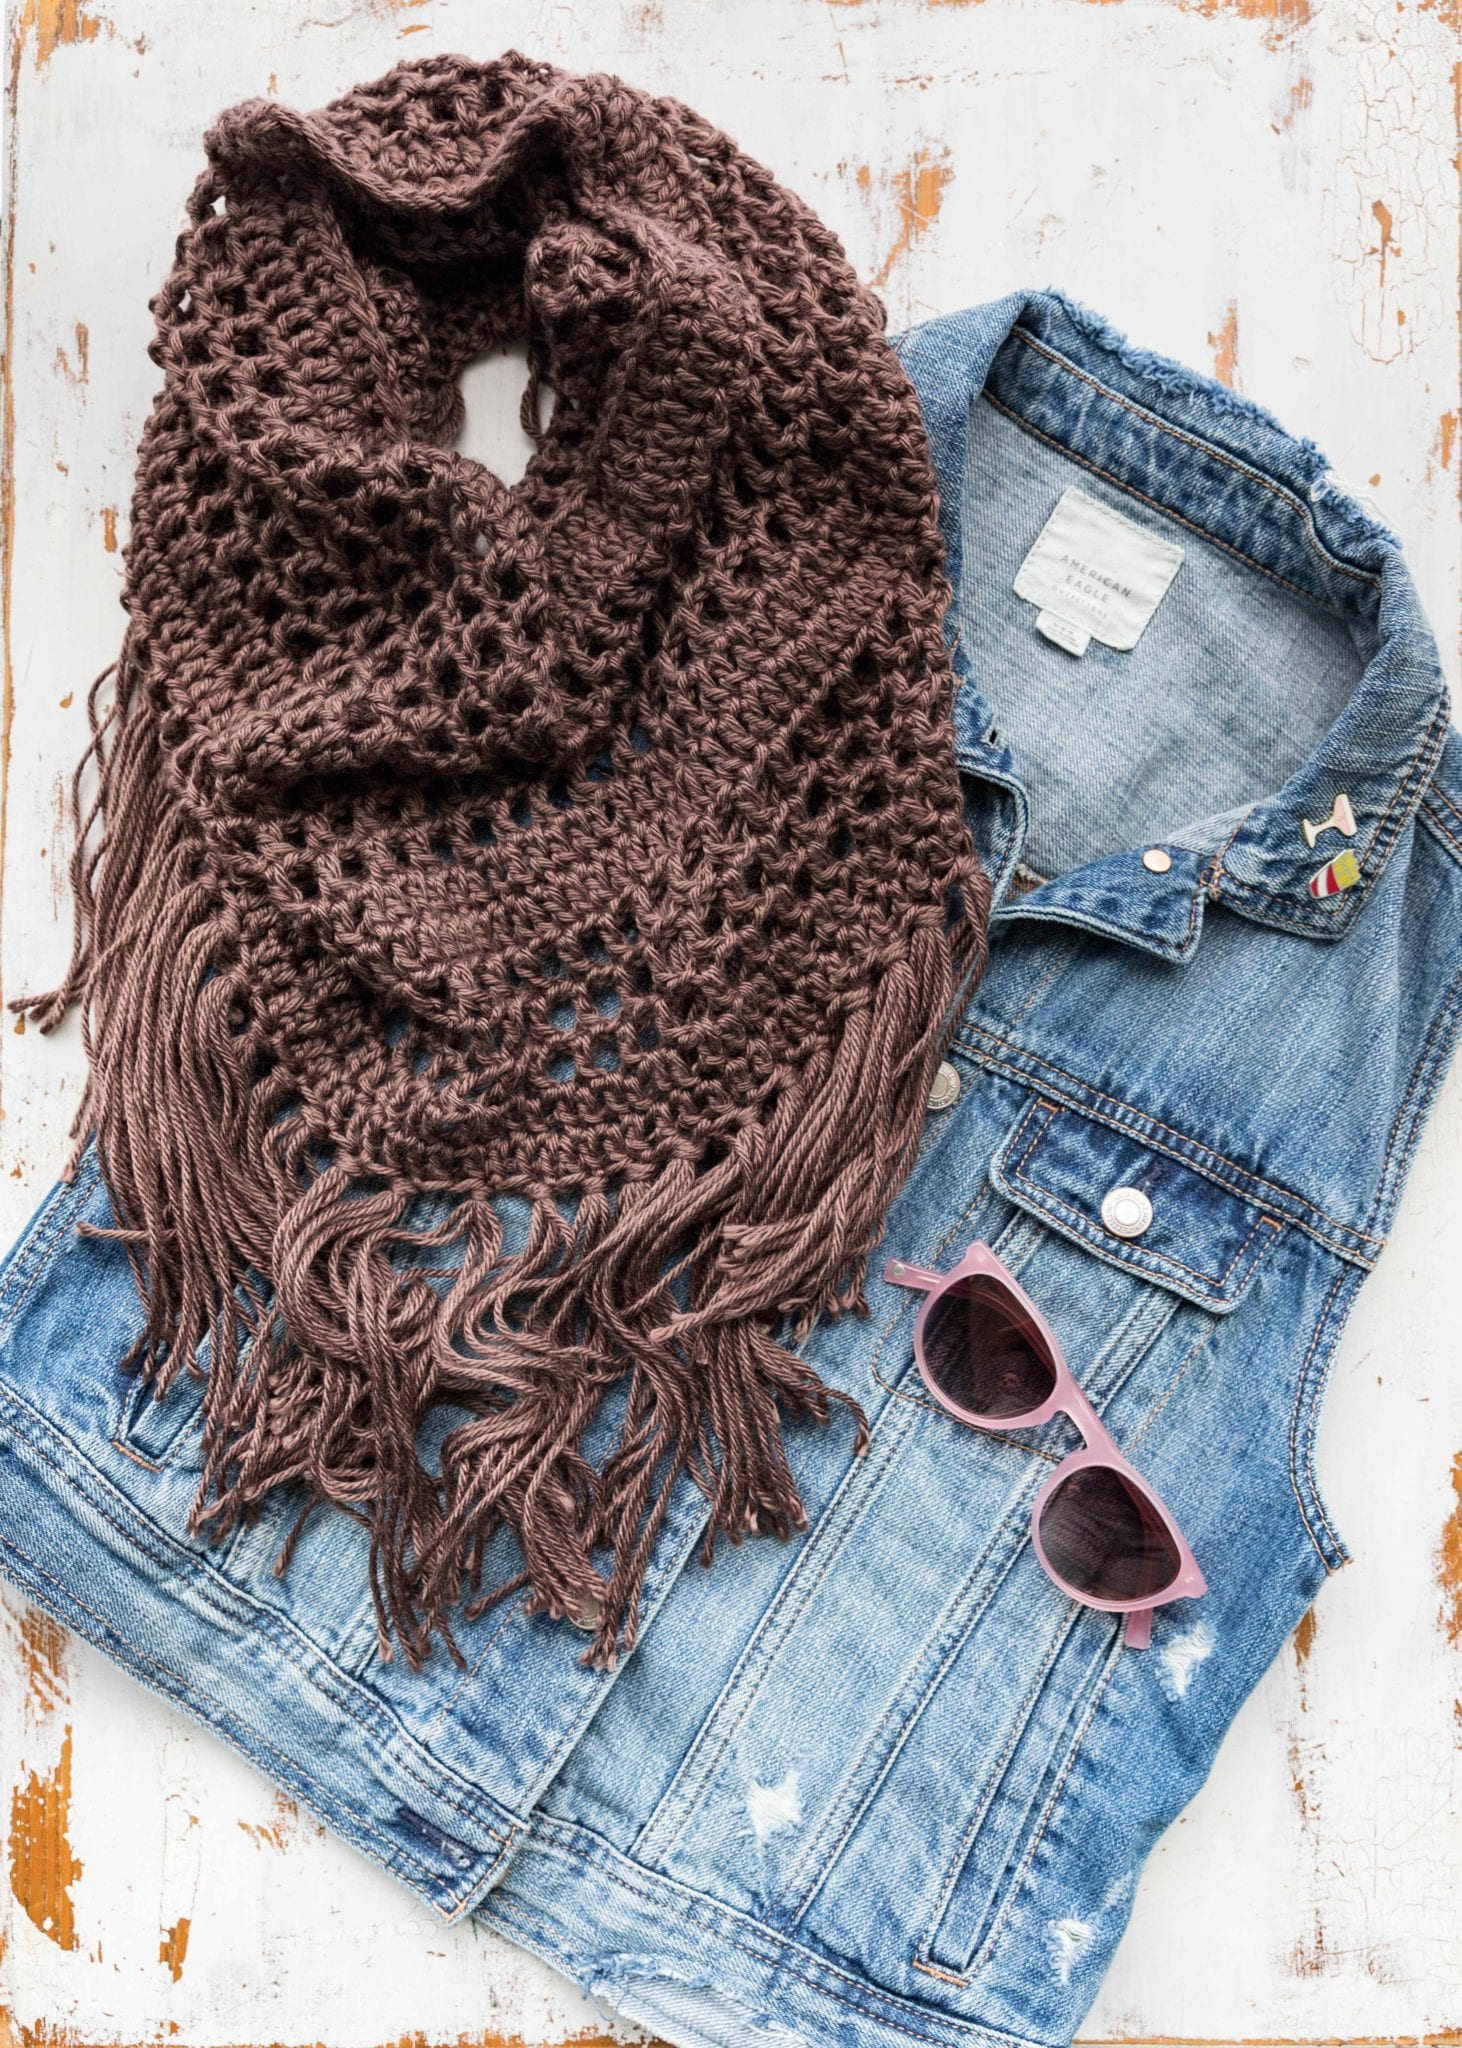 Crochet Boho Fringe Cowl With Breann Sewrella